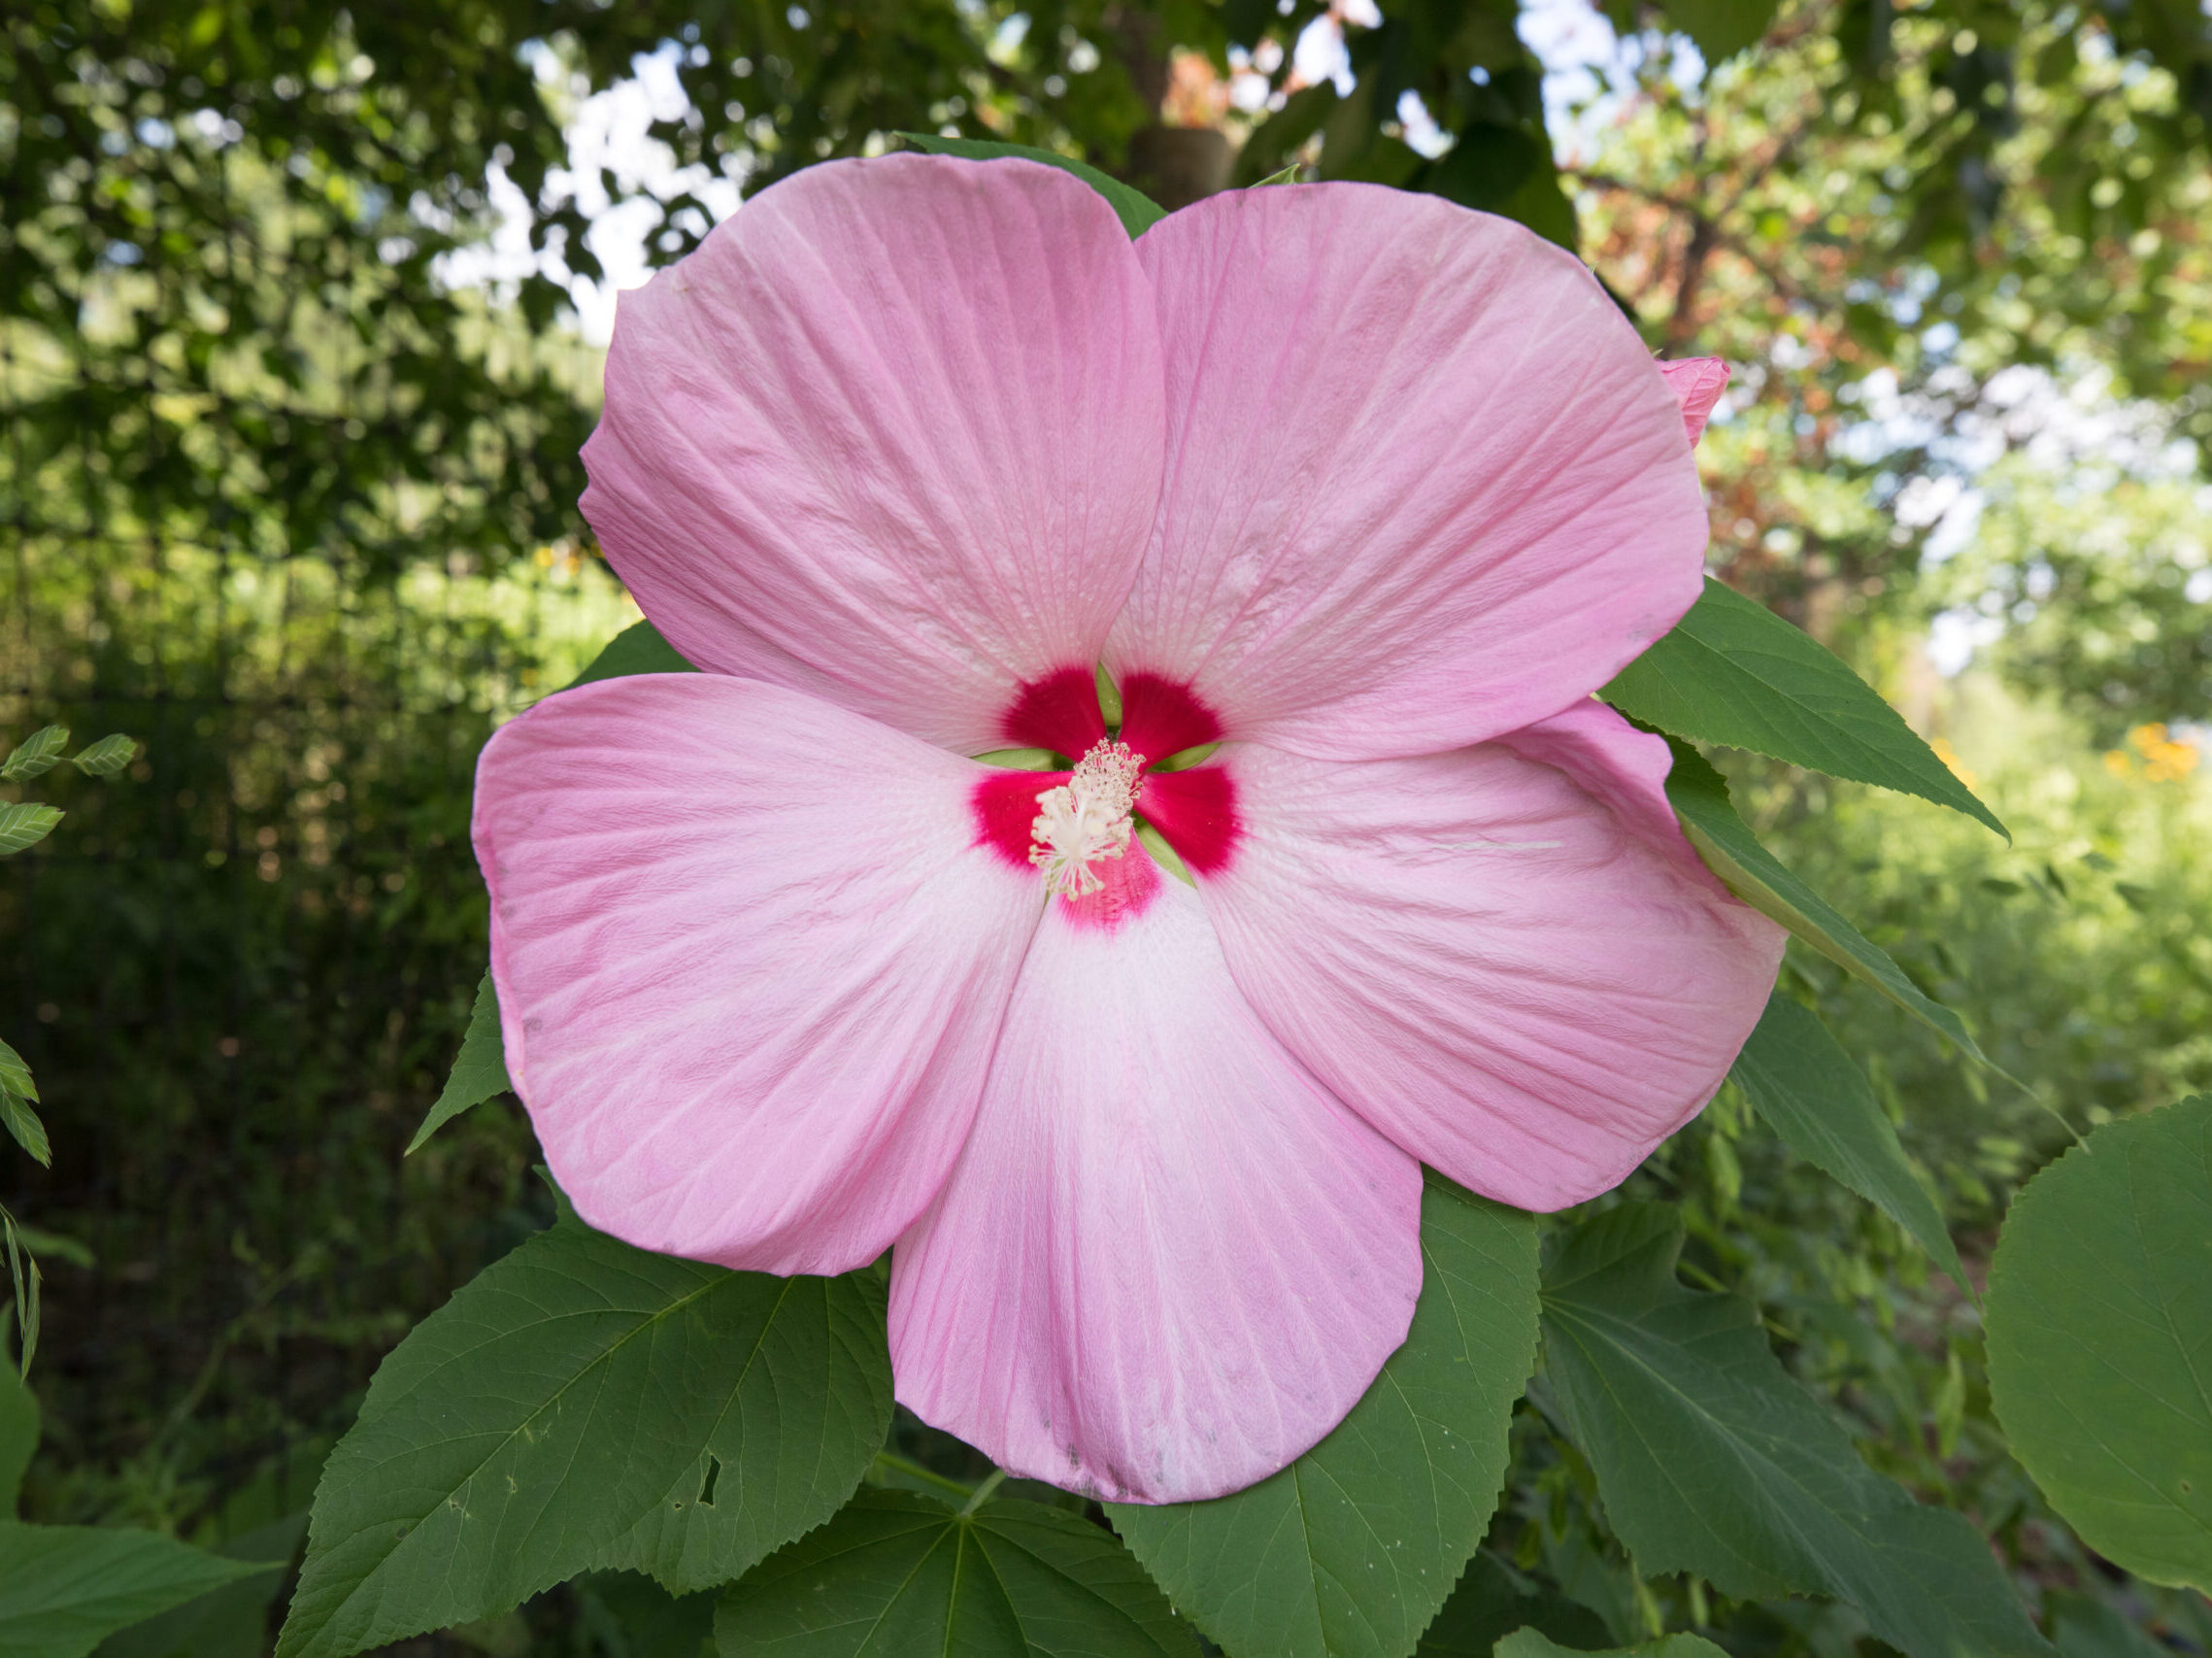 A large pink hibiscus flower with a dark pink center in the habitat garden